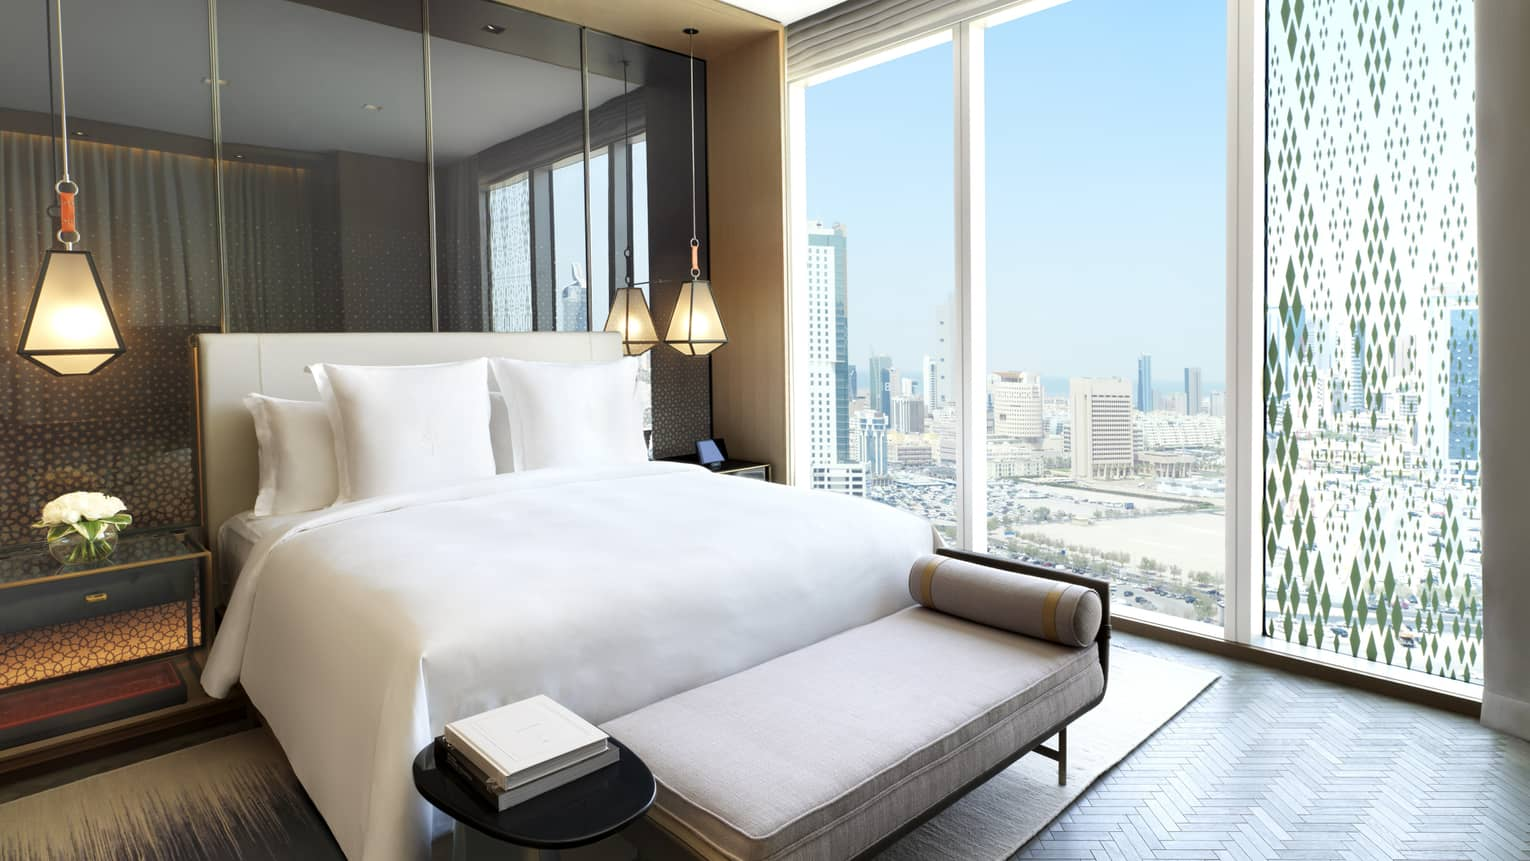 Hotel guest room bed, modern hanging lights above nightstands, plush bench, floor-to-ceiling windows